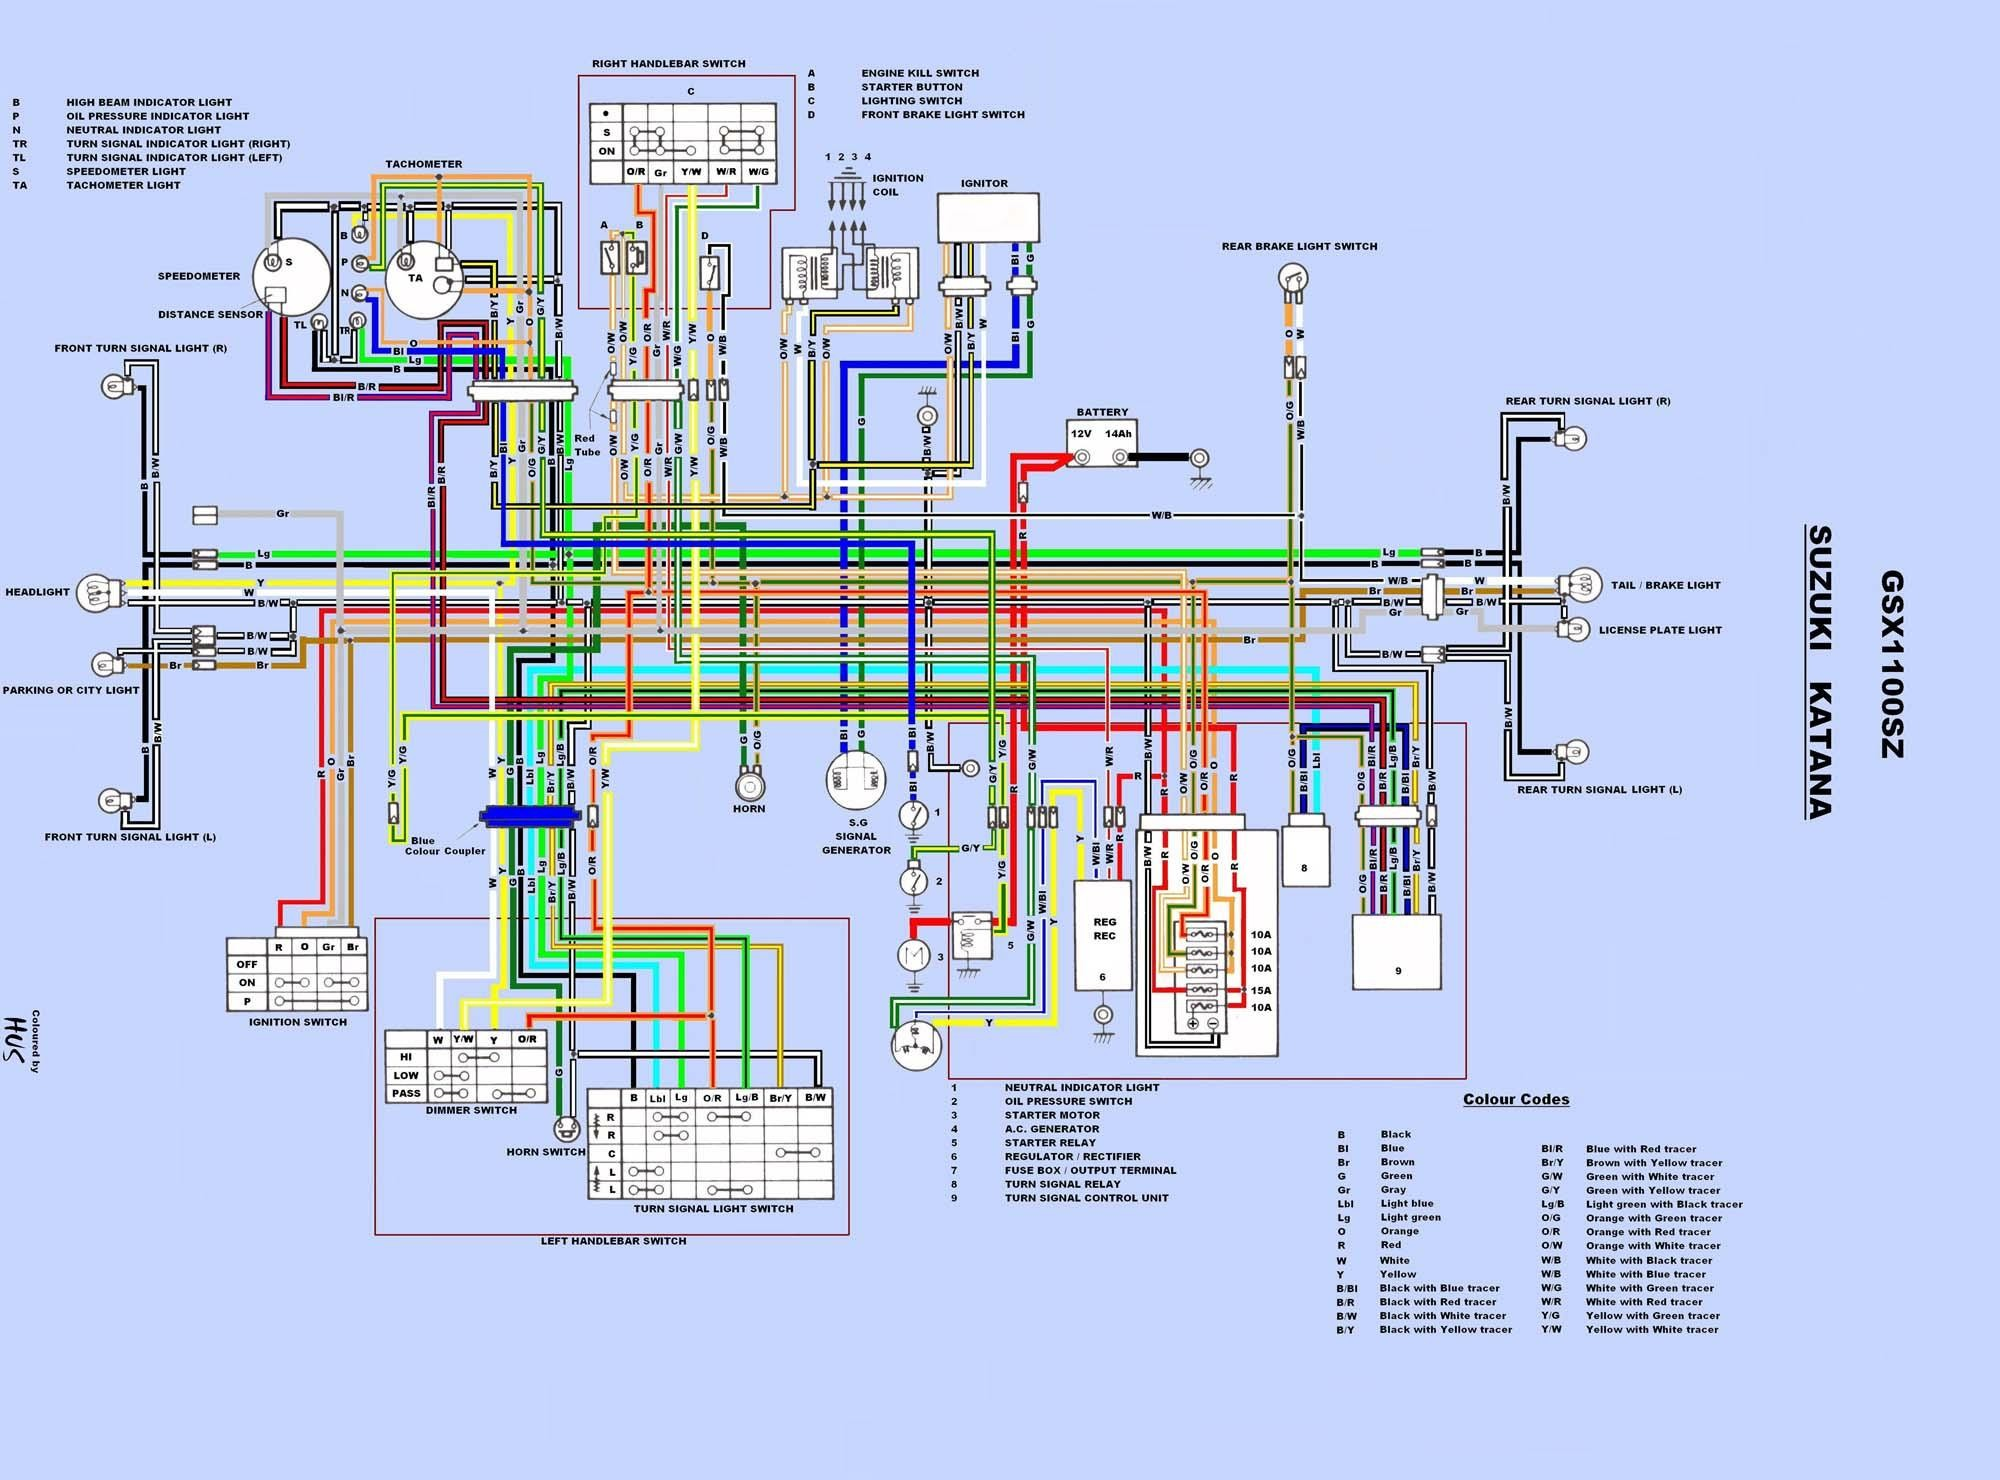 Cbr 600 Wiring Diagram Diagrams Schematic Suzuki Outboard Motor 99 Gsxr Data F4i Ignition